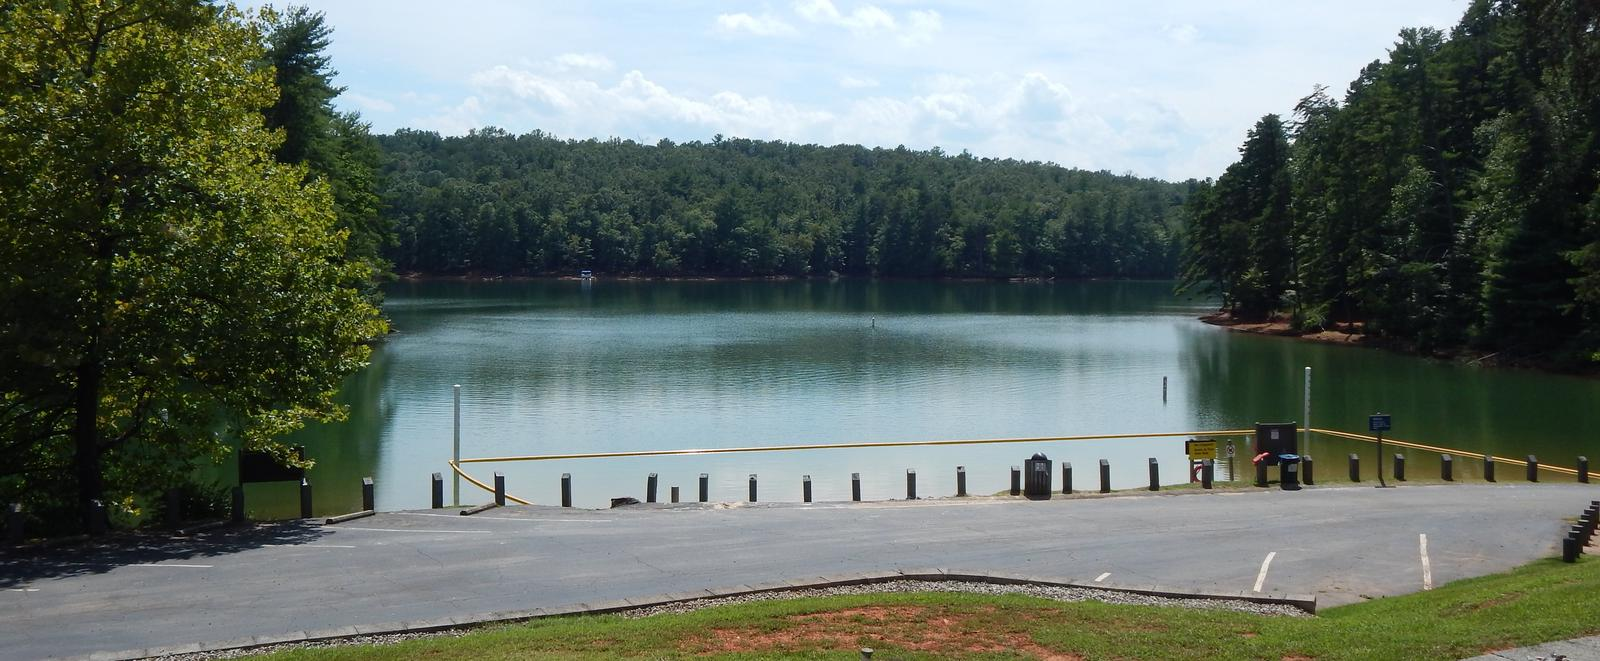 View of Philpott Lake from the parking area.Philpott Lake and parking area